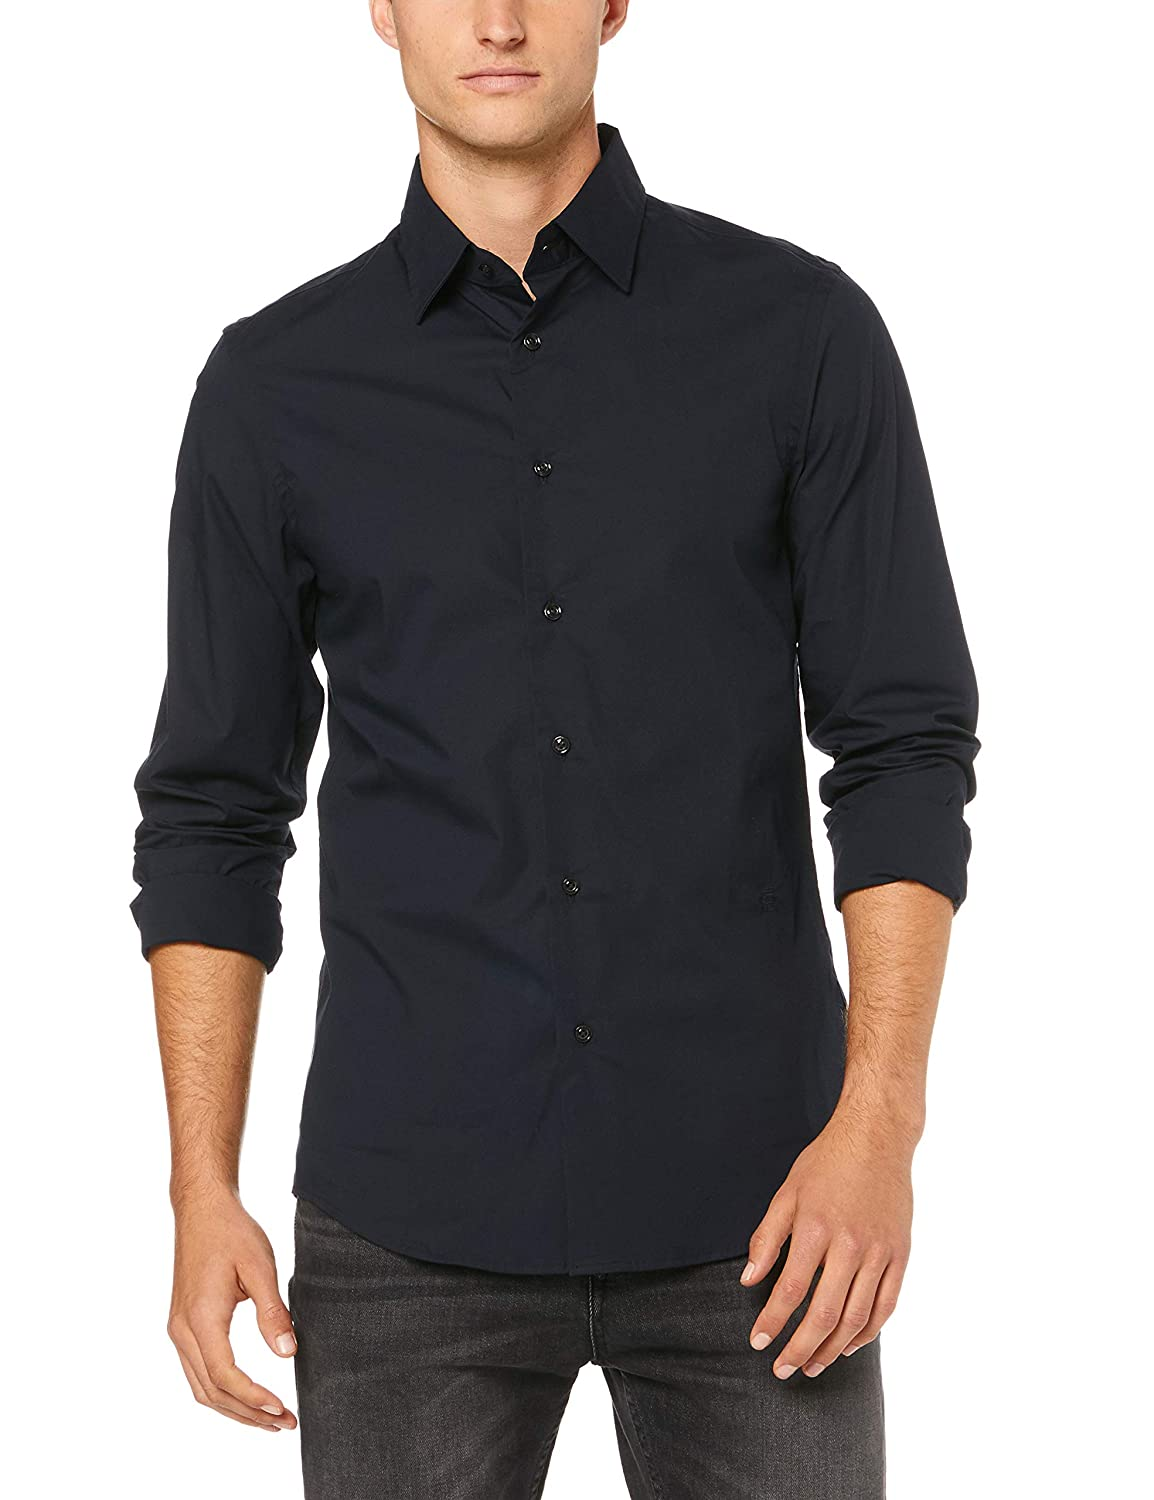 G-STAR RAW Core Super Slim Camisa Vaquera para Hombre